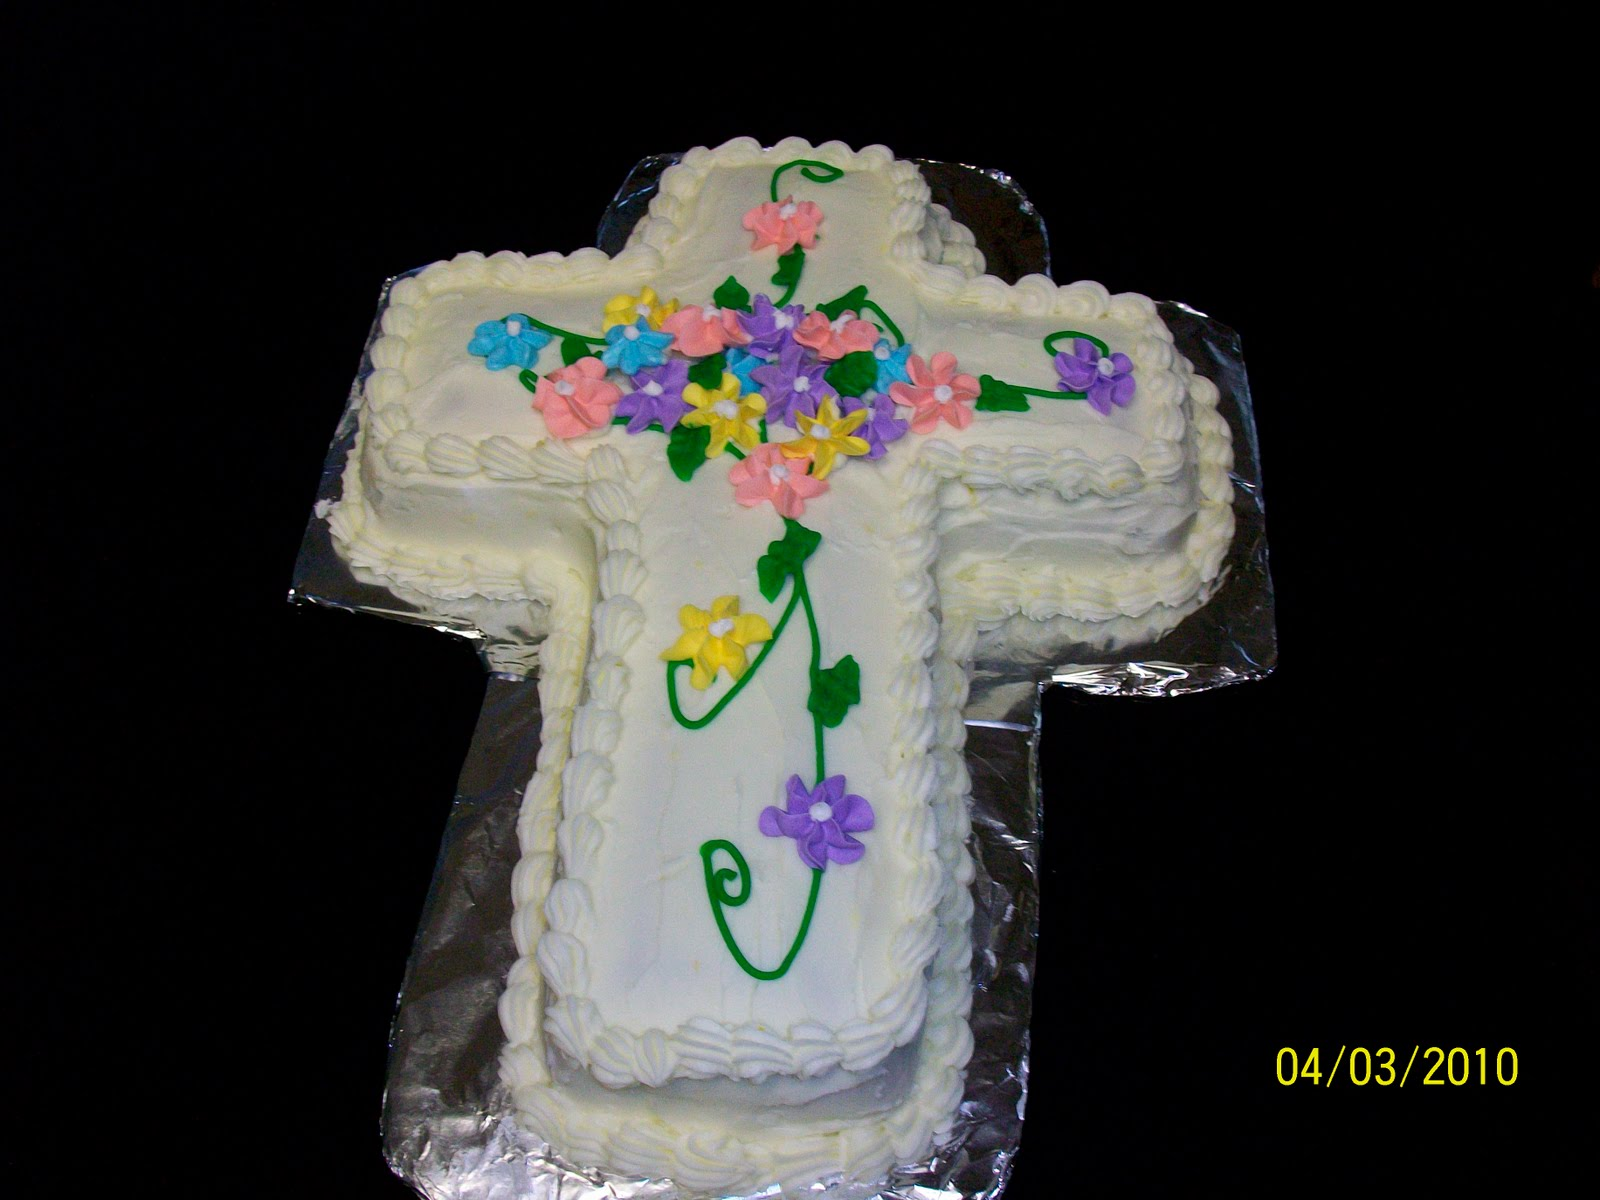 Deeny S Simple Joys My Easter Cake Masterpiece